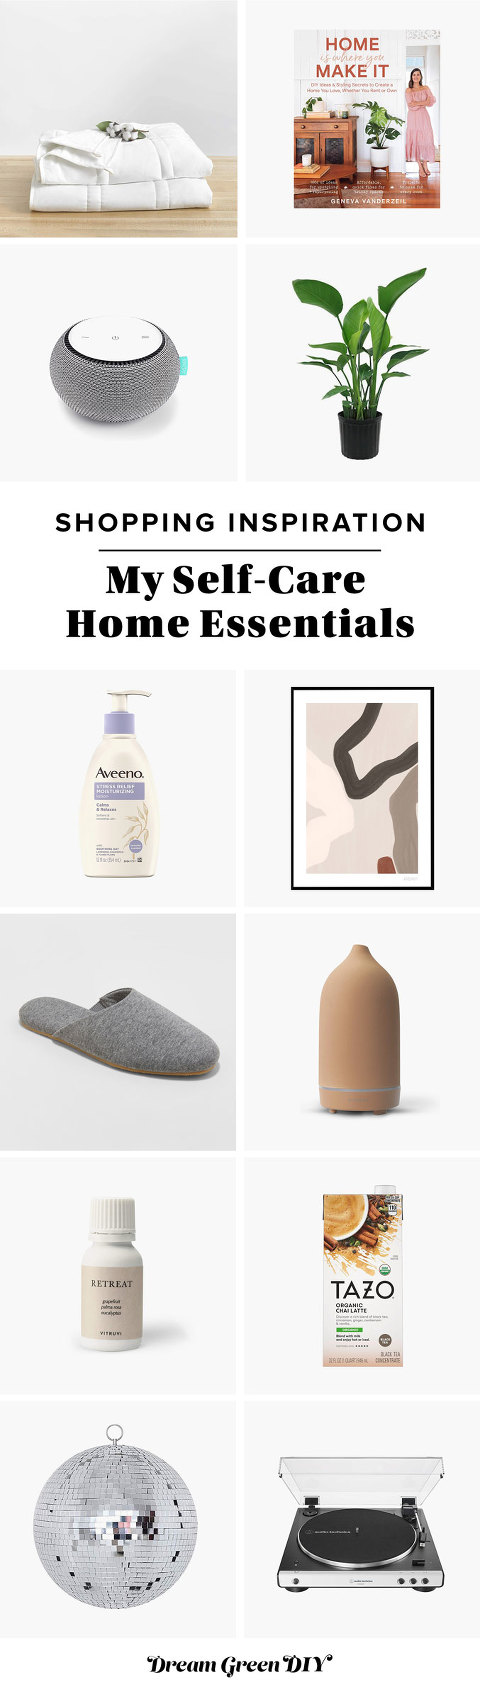 My Self-Care Home Essentials